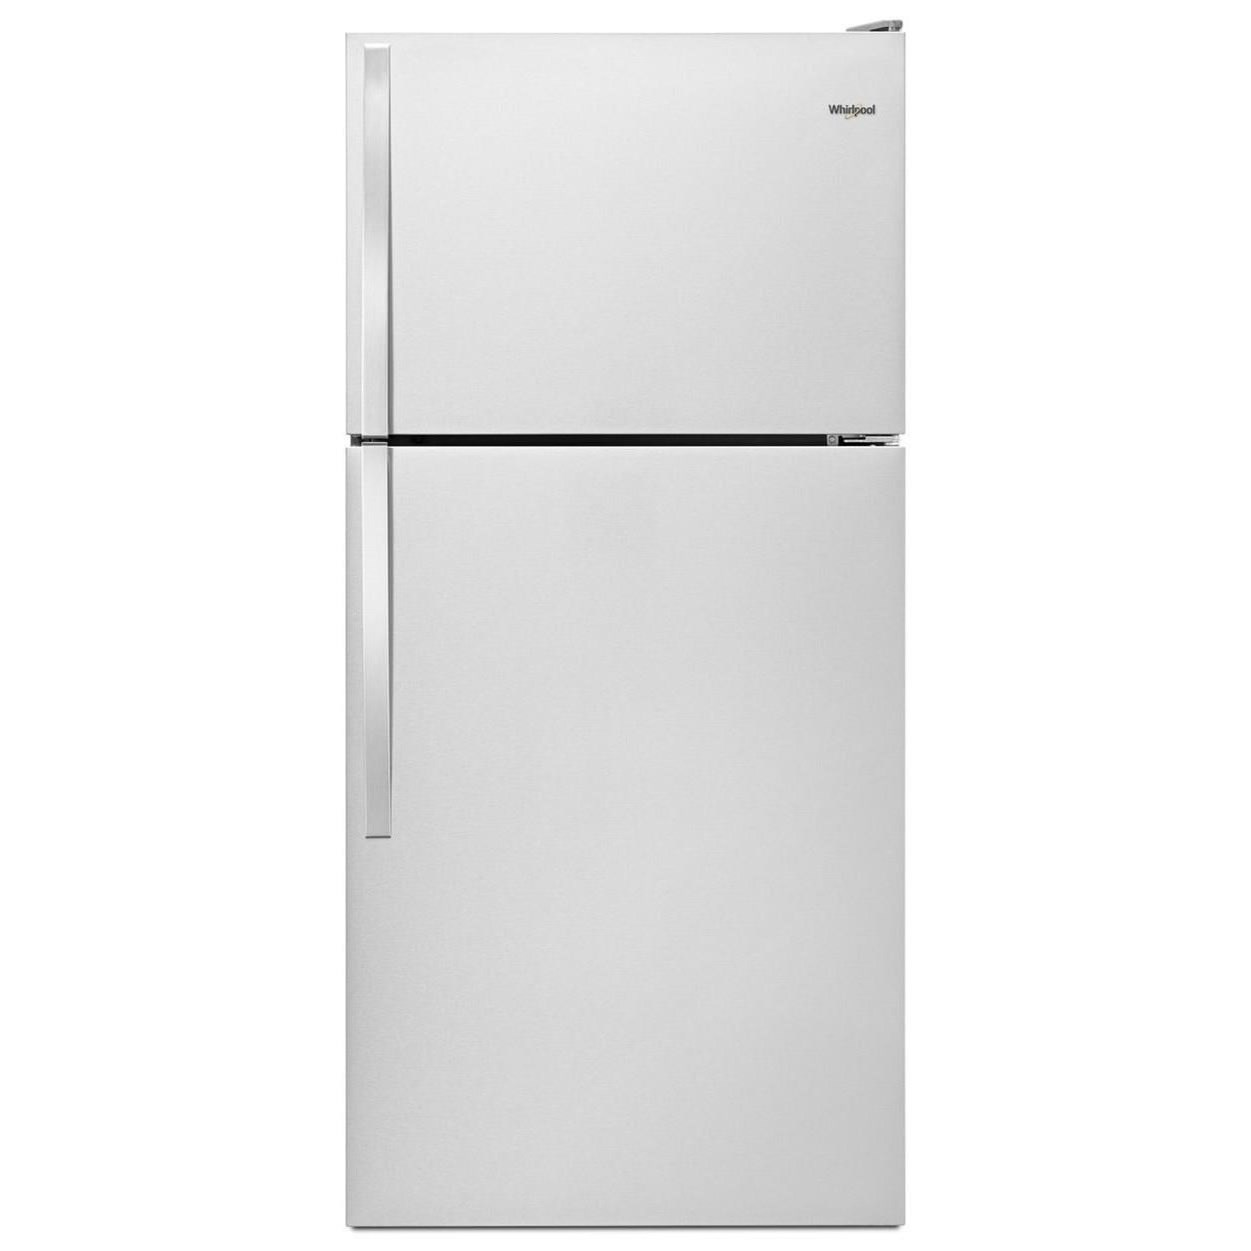 """Top Mount Refrigerators 30"""" Wide Top-Freezer Refrigerator by Whirlpool at Furniture and ApplianceMart"""